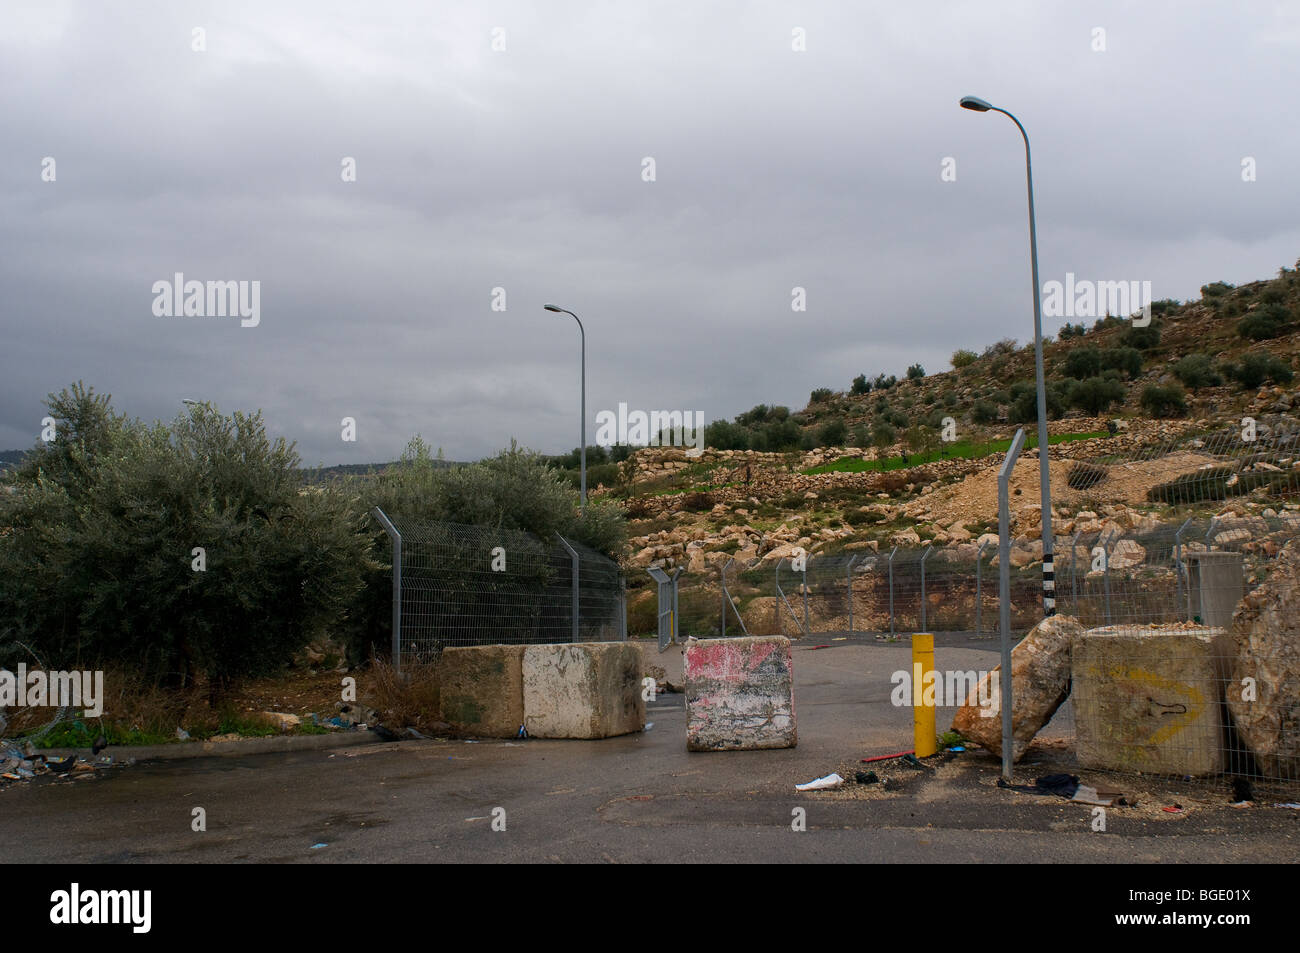 Physical obstacles between a road leading to a Palestinian village and Route 443 near Jewish town of Modiin, Israel - Stock Image